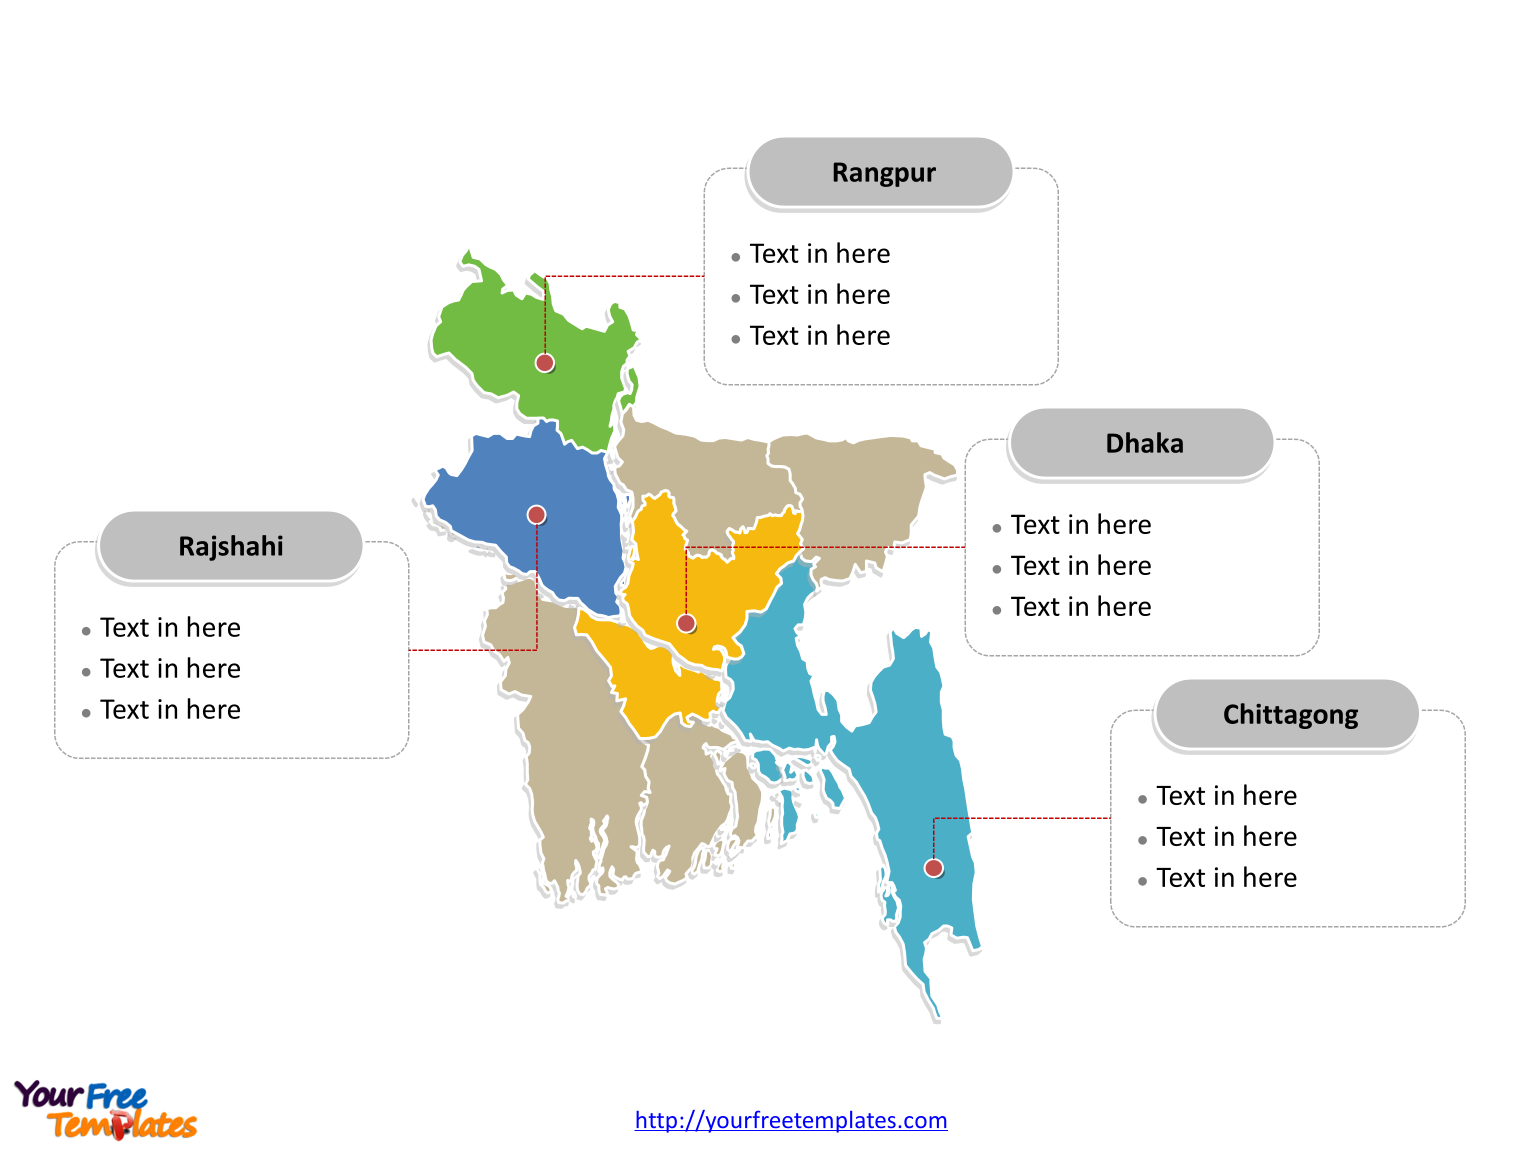 Bangladesh Political map labeled with major divisions